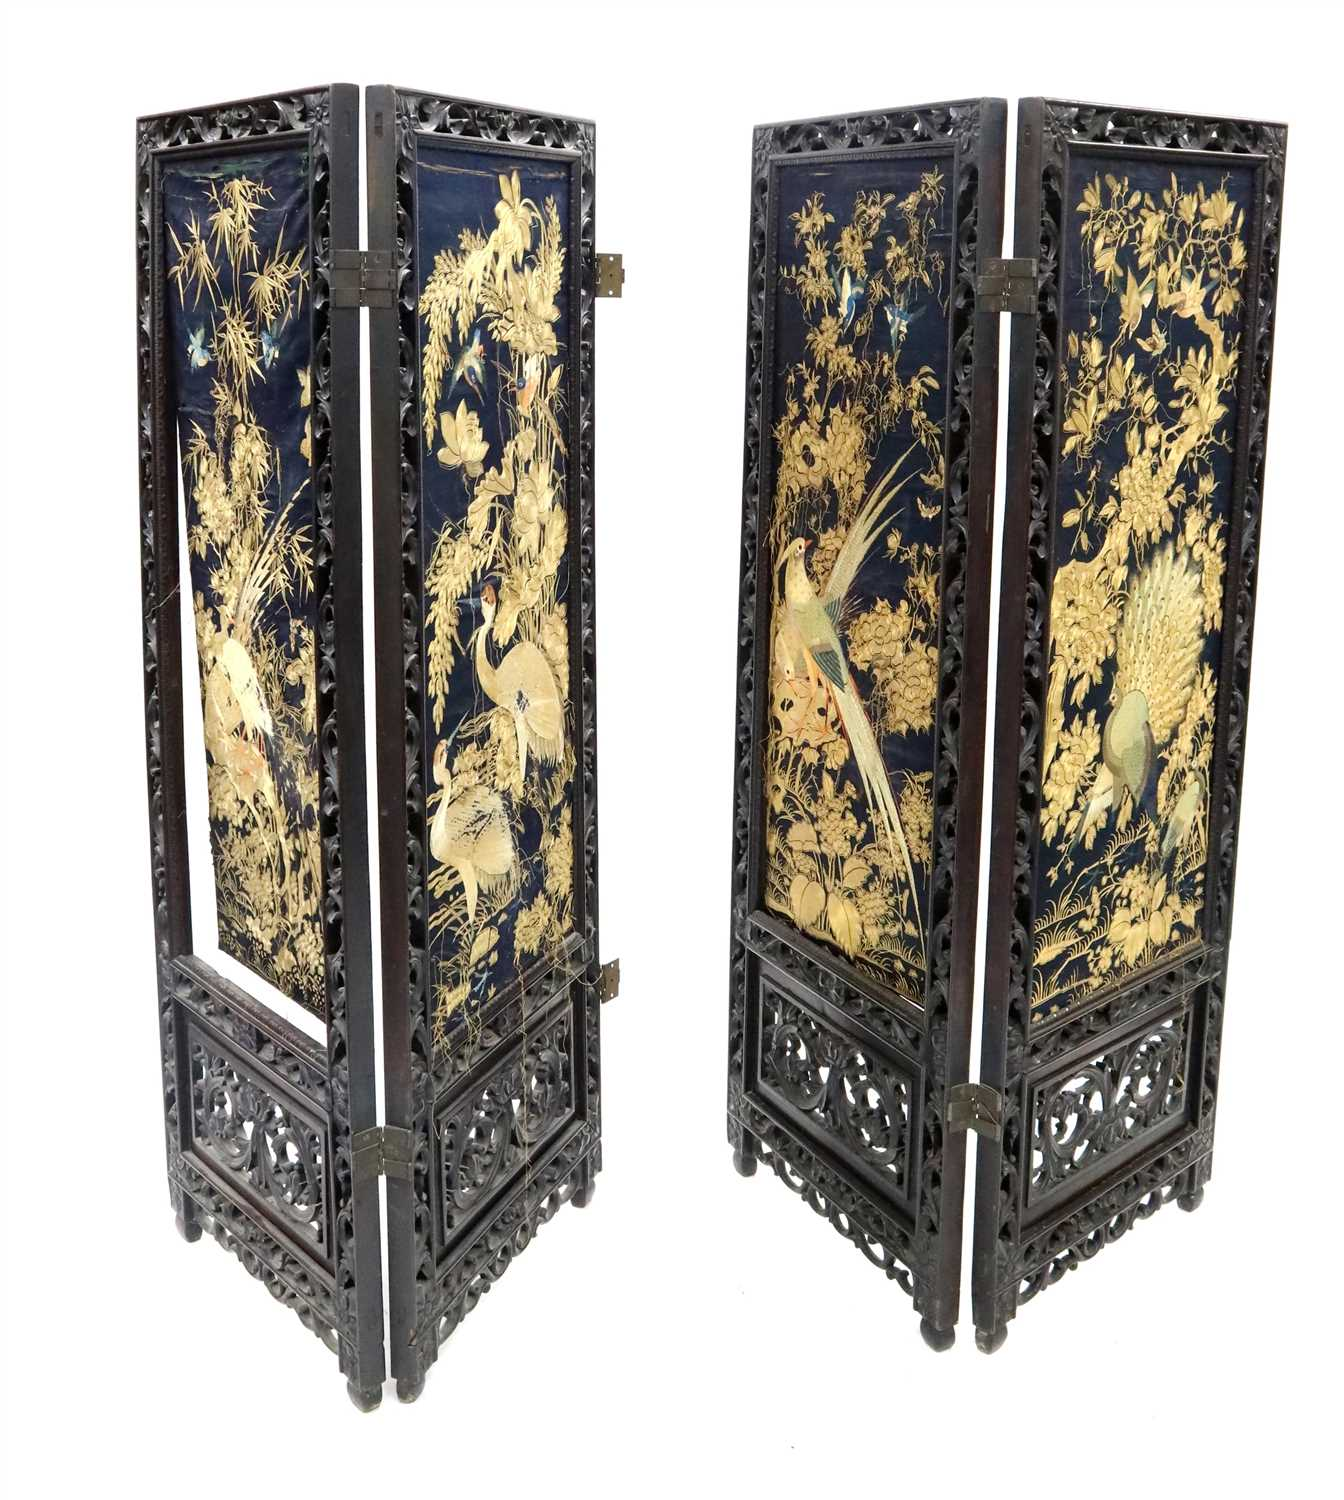 565 - A large 19th century Chinese carved hardwood four-fold screen with inset upholstered panels